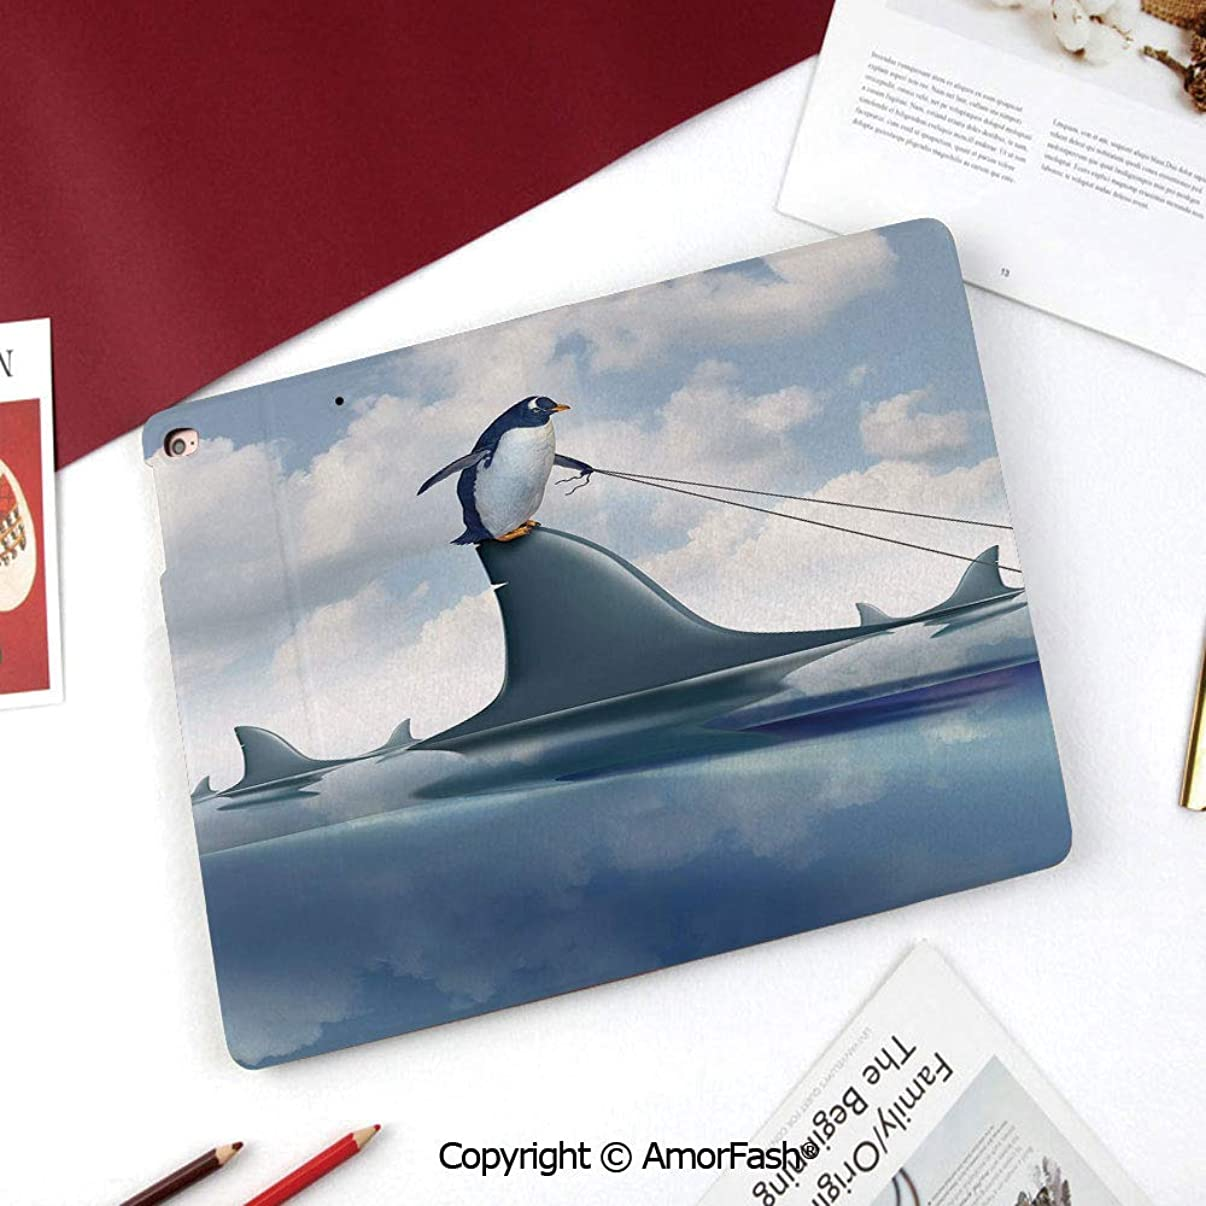 Shark Samsung Galaxy Tab A 8.0 Case (2015 Old Model) - Standing Cover Folio Case,Fear Management Leadership Concept with A Penguin Holding Shark Humor Design Decorative